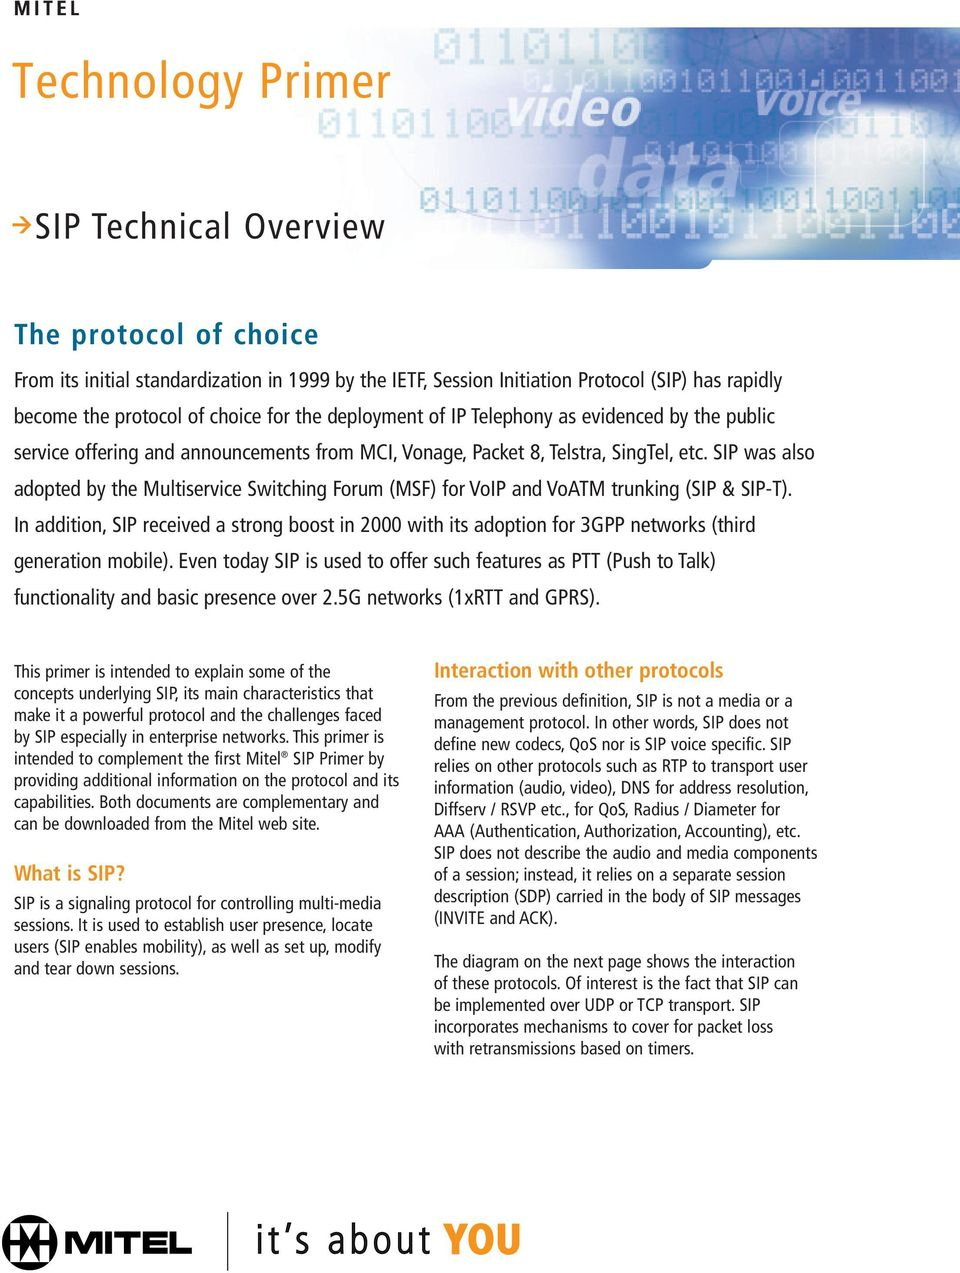 SIP was also adopted by the Multiservice Switching Forum (MSF) for VoIP and VoATM trunking (SIP & SIP-T).